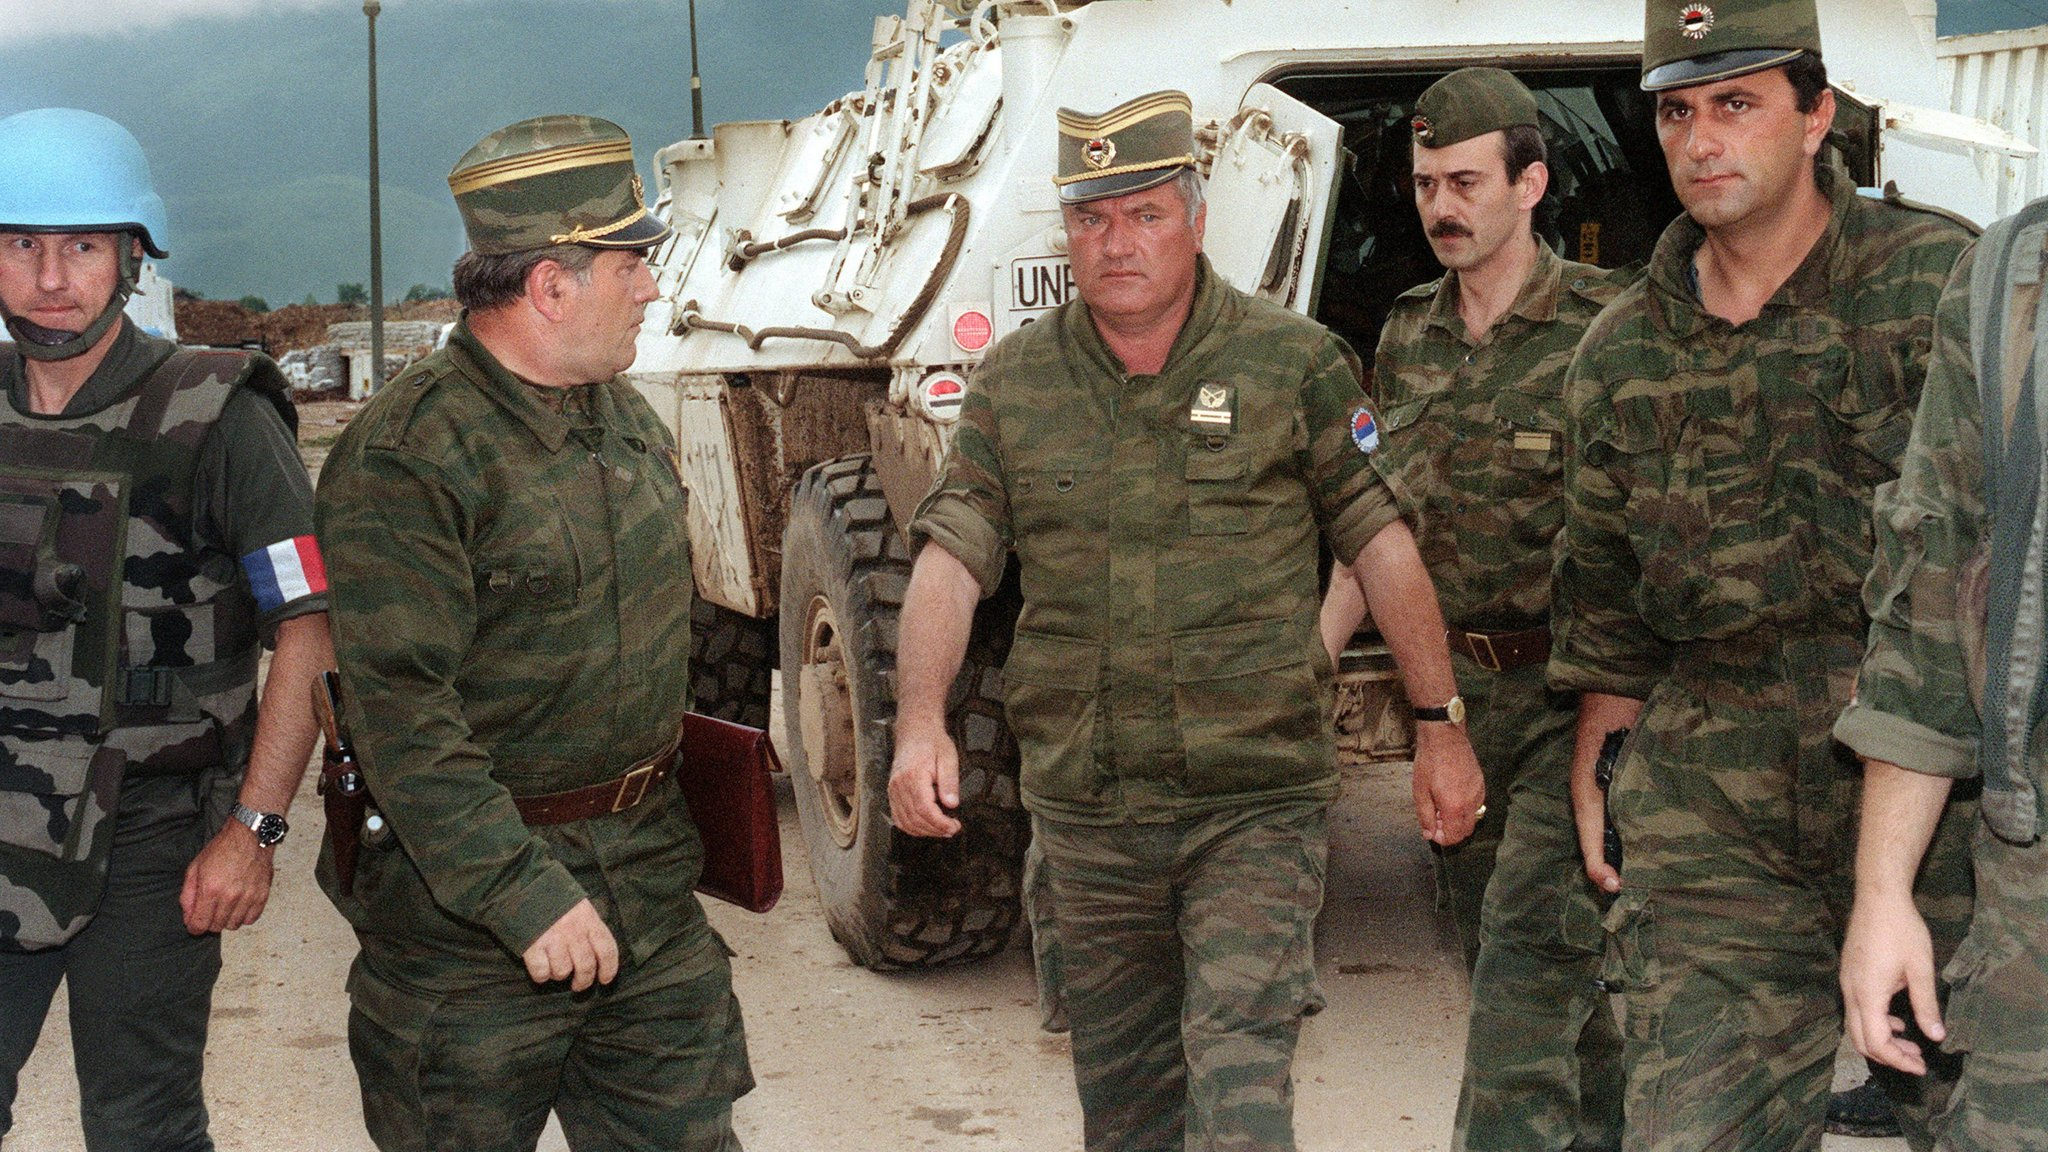 The conviction of Ratko Mladic is a significant achievement